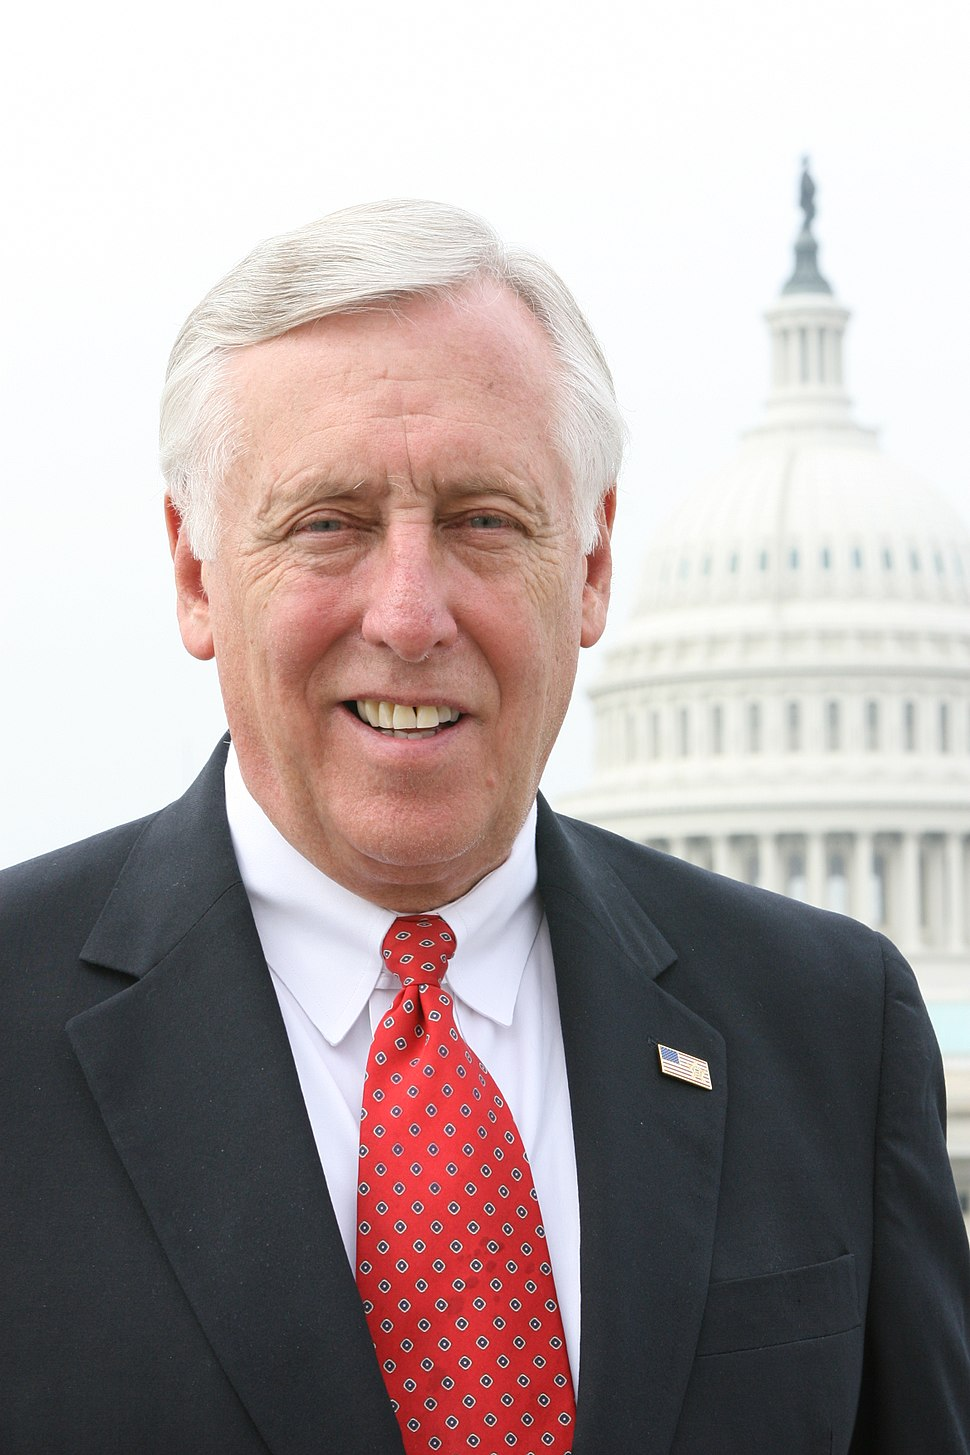 Steny Hoyer, official photo as Whip